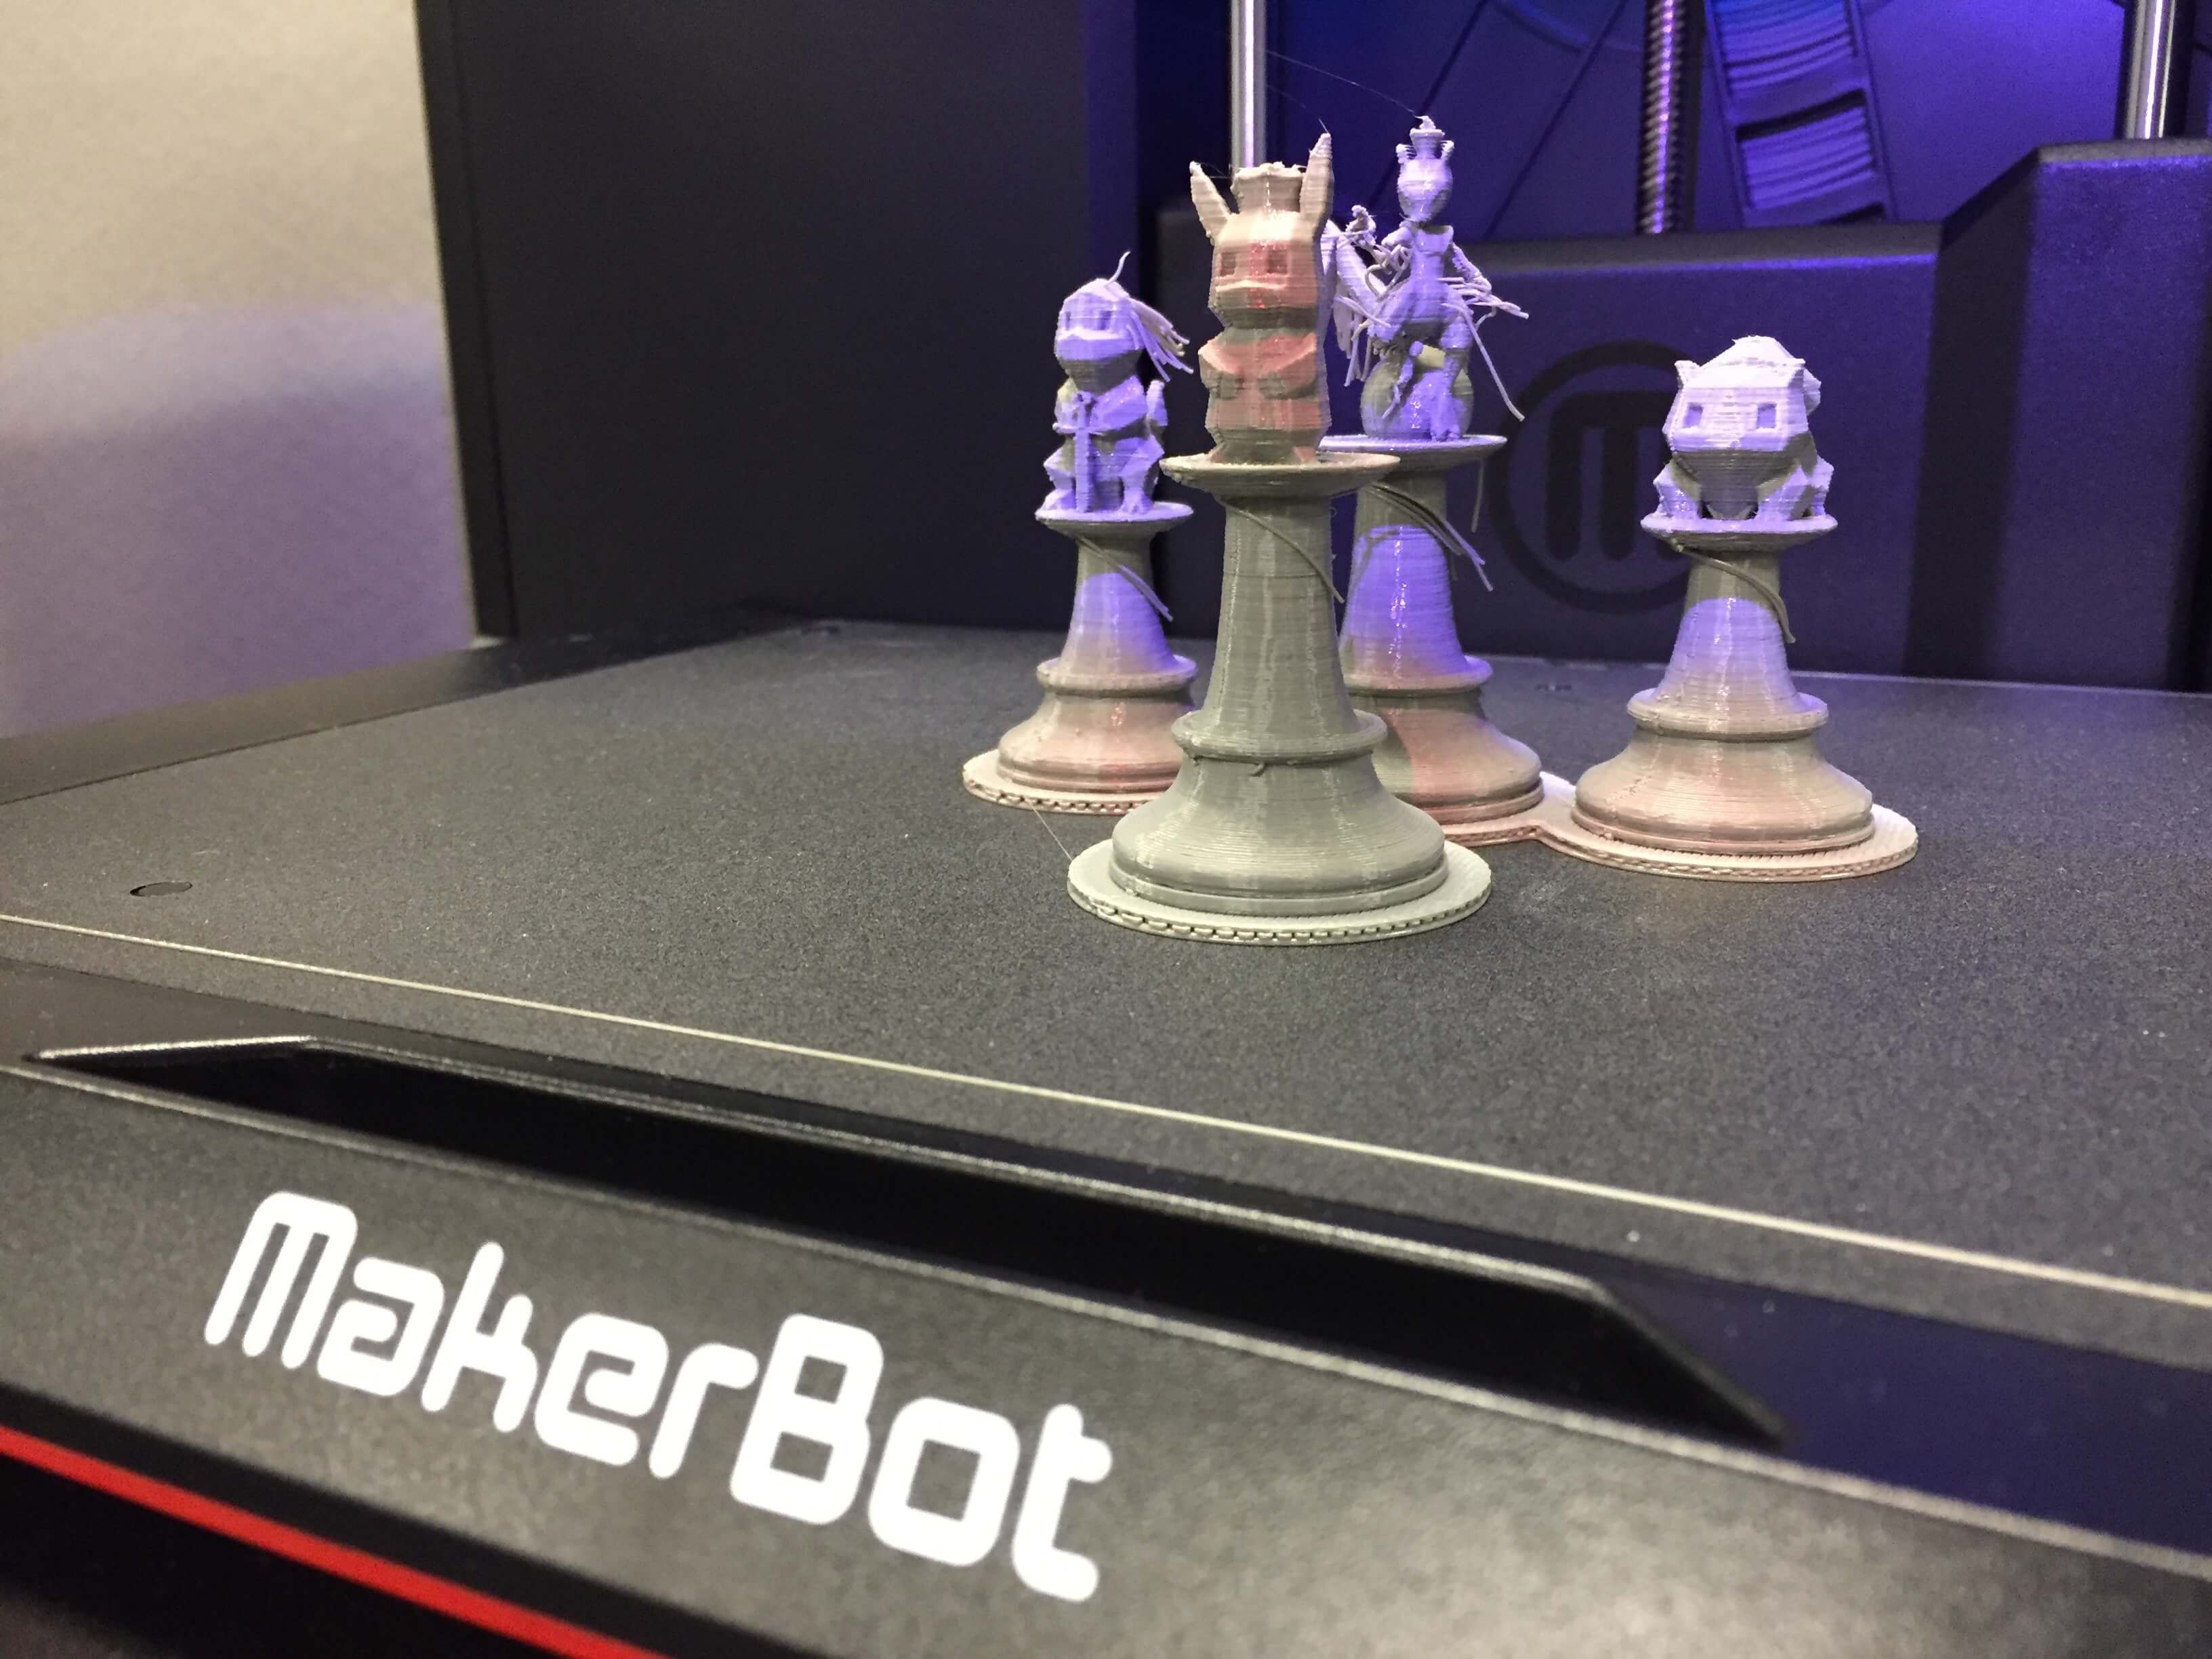 replicator + printed objects